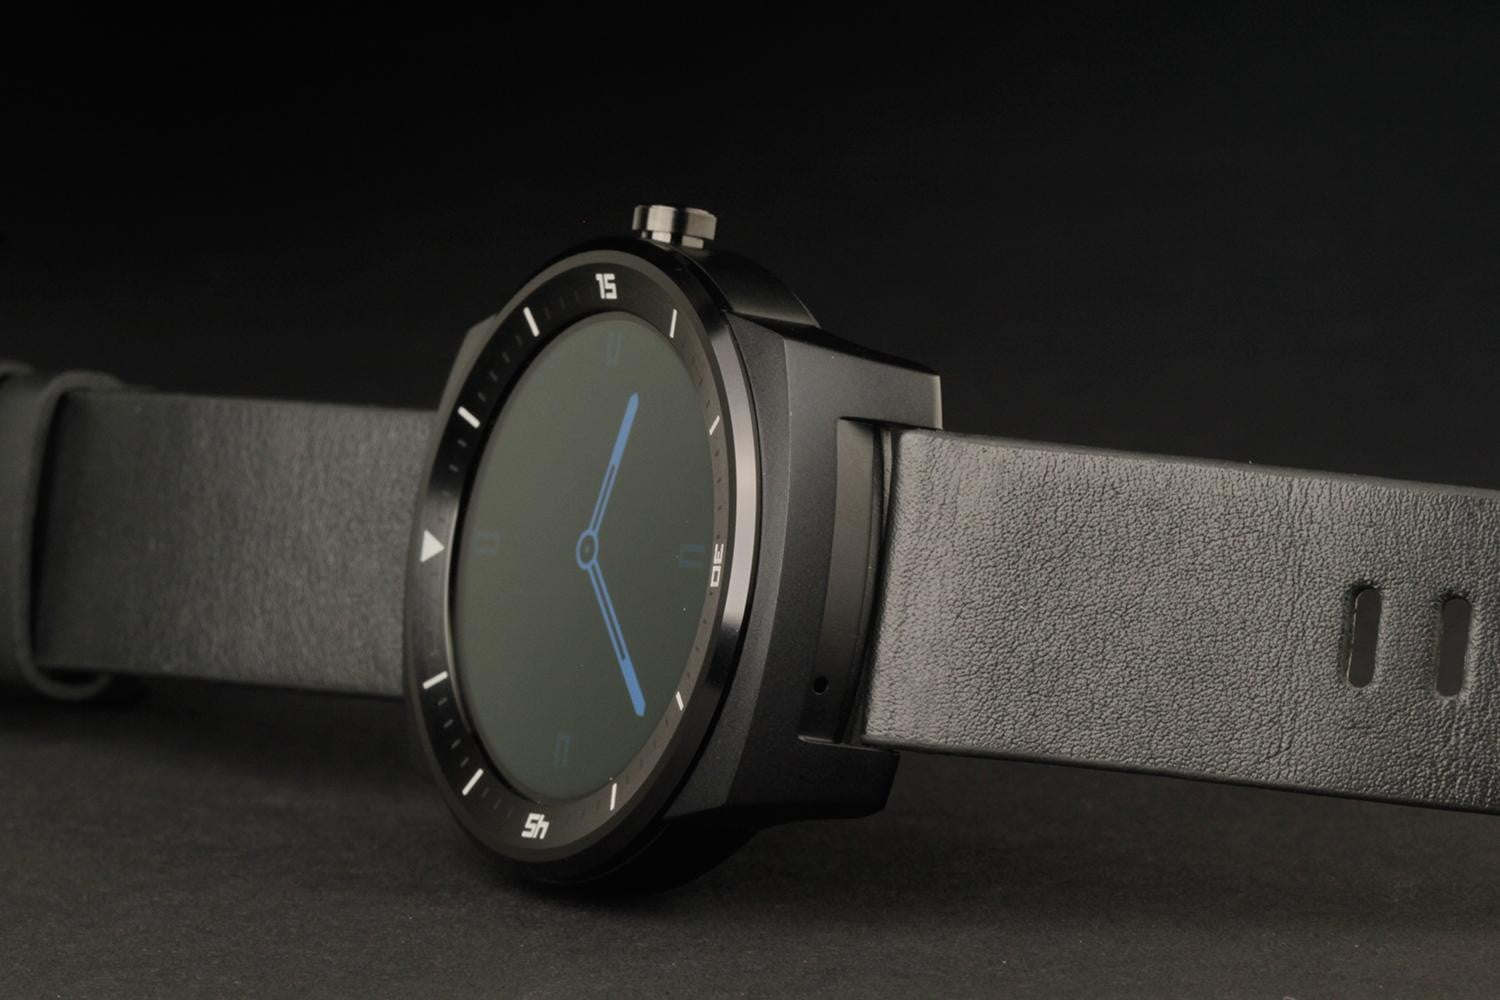 lg g watch r review android wear smartwatch digital trends